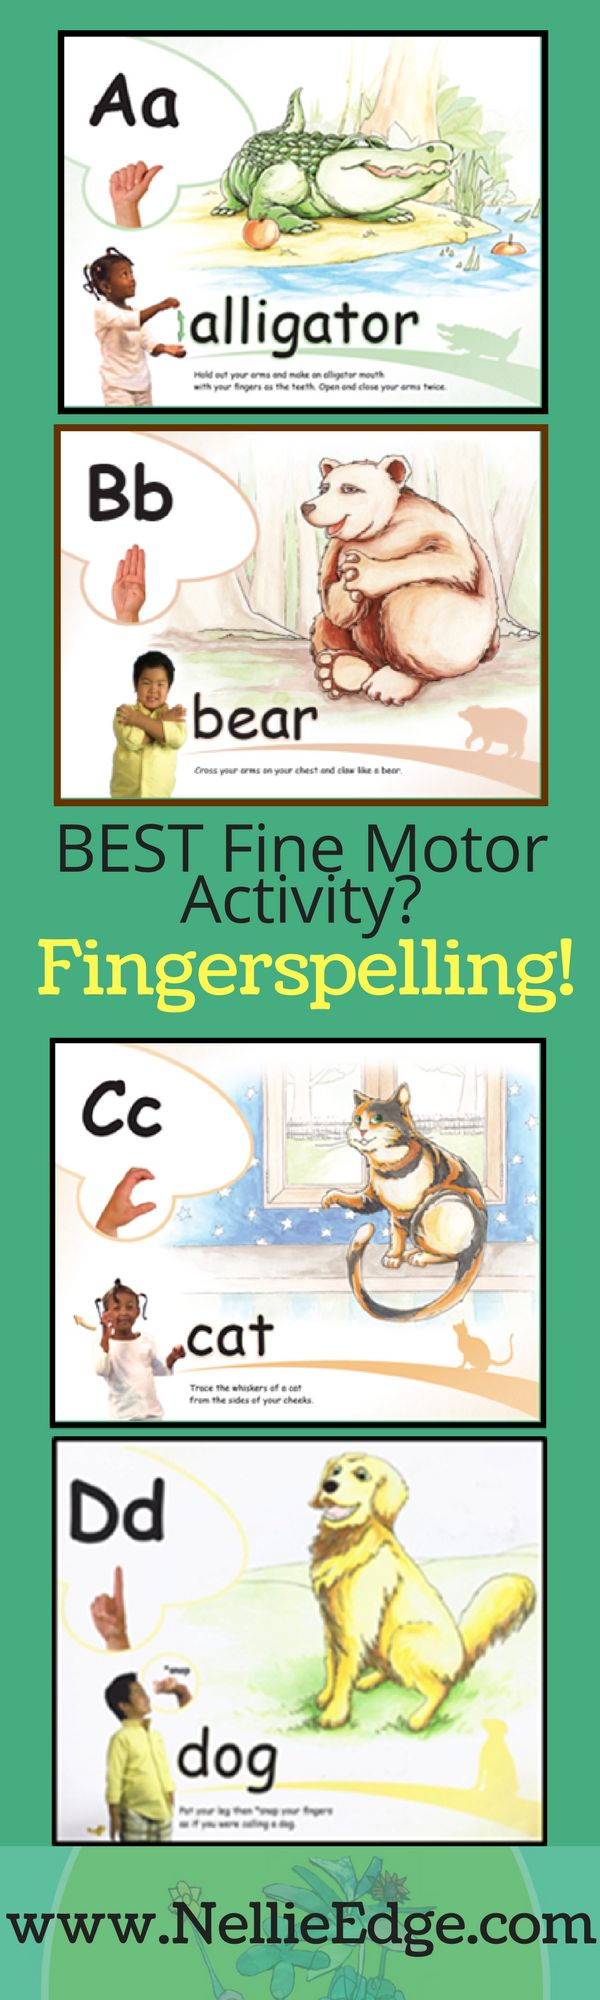 """Fingerspelling is the BEST way to develop fine motor skills and integrate ABC Phonics mastery. Photos from """"ABC Phonics: Sing, Sign, and Read!"""" by Nellie Edge, published by Sign2Me. 